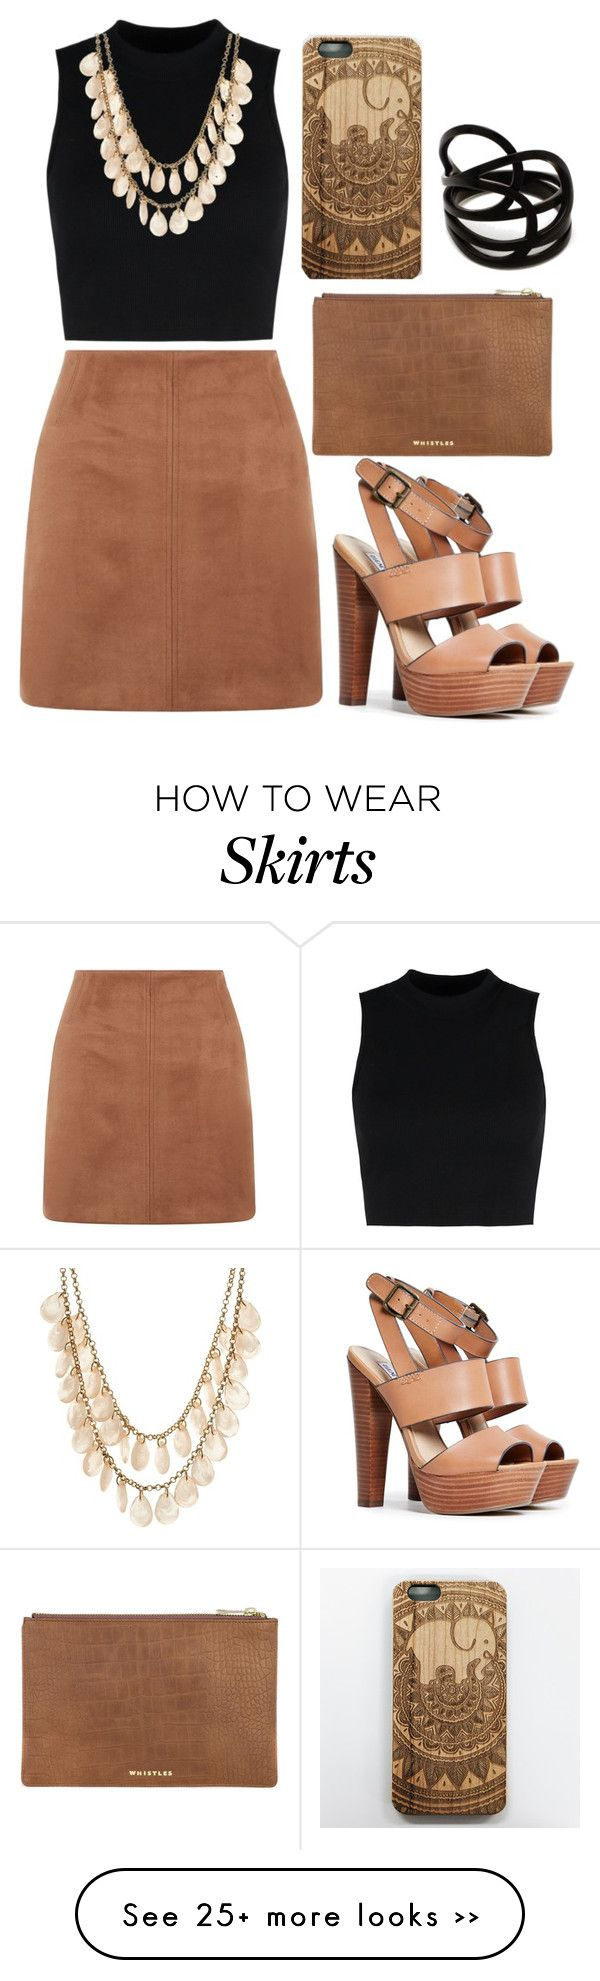 """Brown Skirt"" by fashionbloggerwannabe on Polyvore"